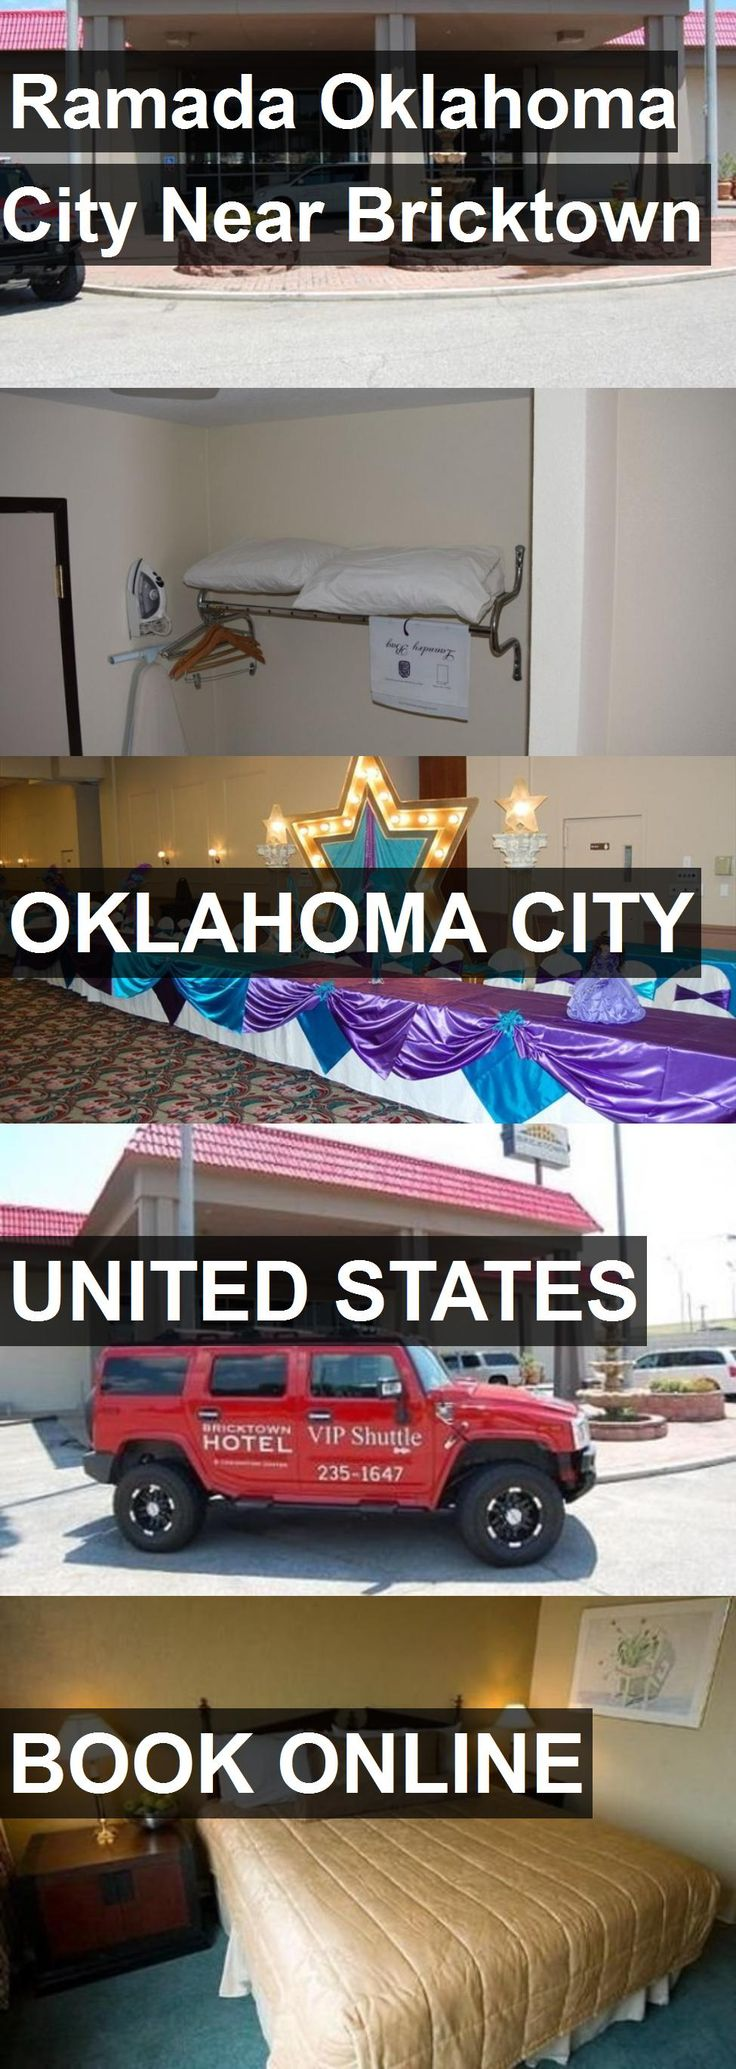 Hotel Ramada Oklahoma City Near Bricktown in Oklahoma City, United States. For more information, photos, reviews and best prices please follow the link. #UnitedStates #OklahomaCity #travel #vacation #hotel